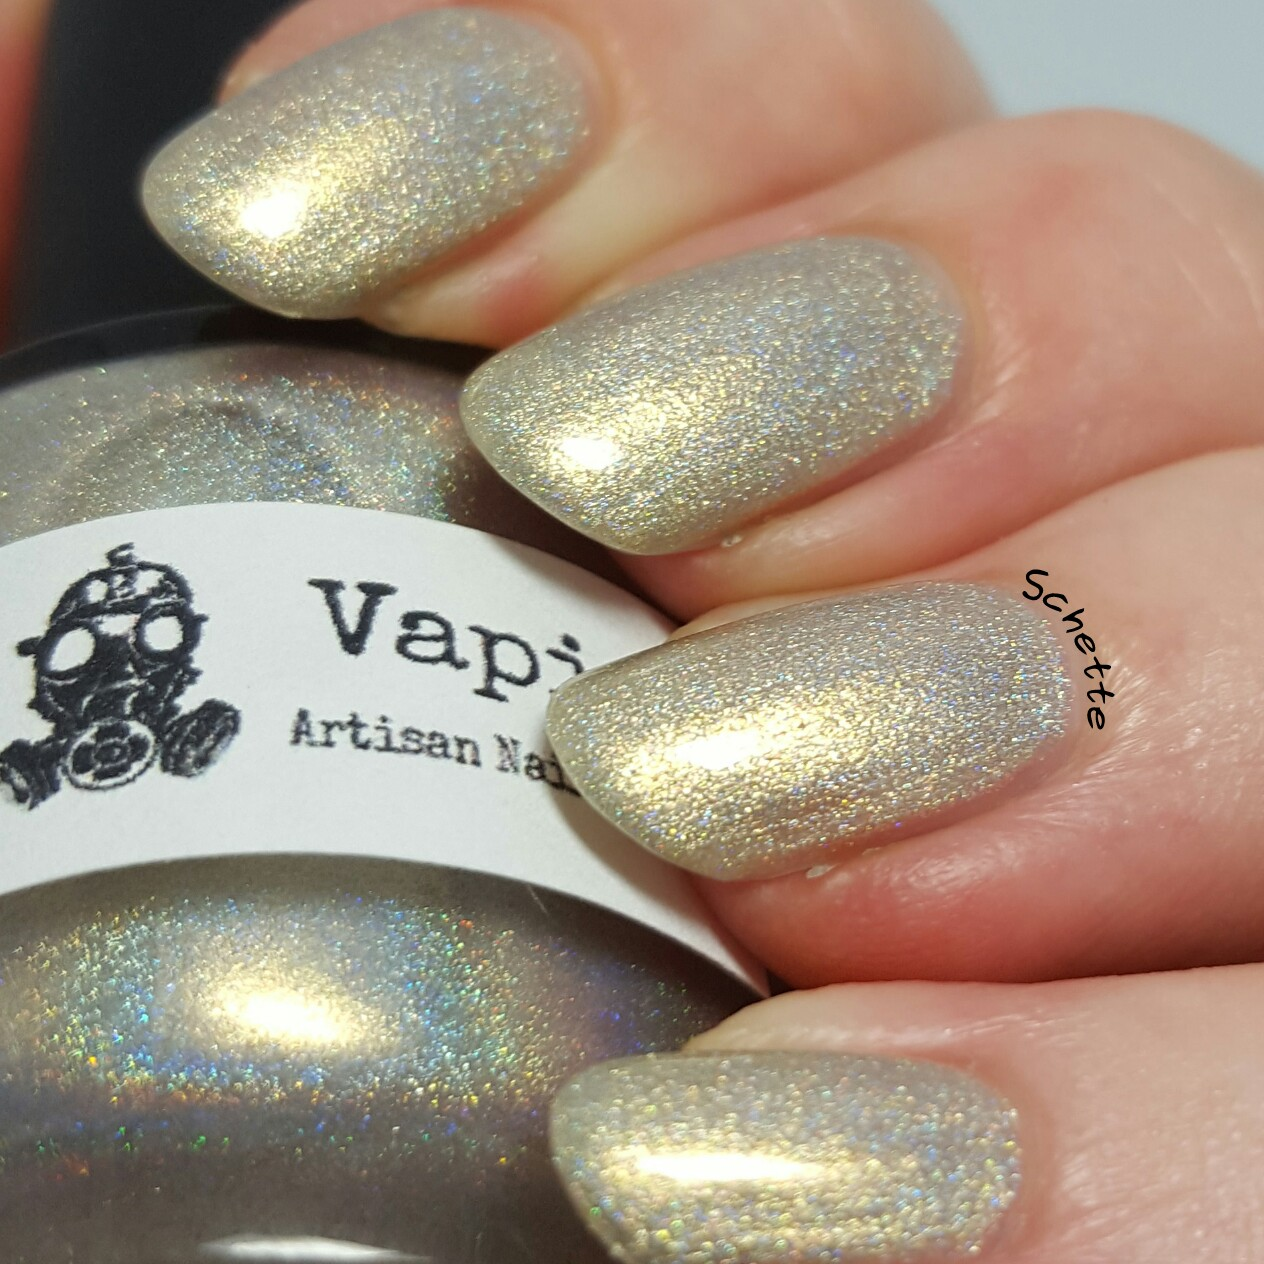 Vapid Lacquer - Gilver